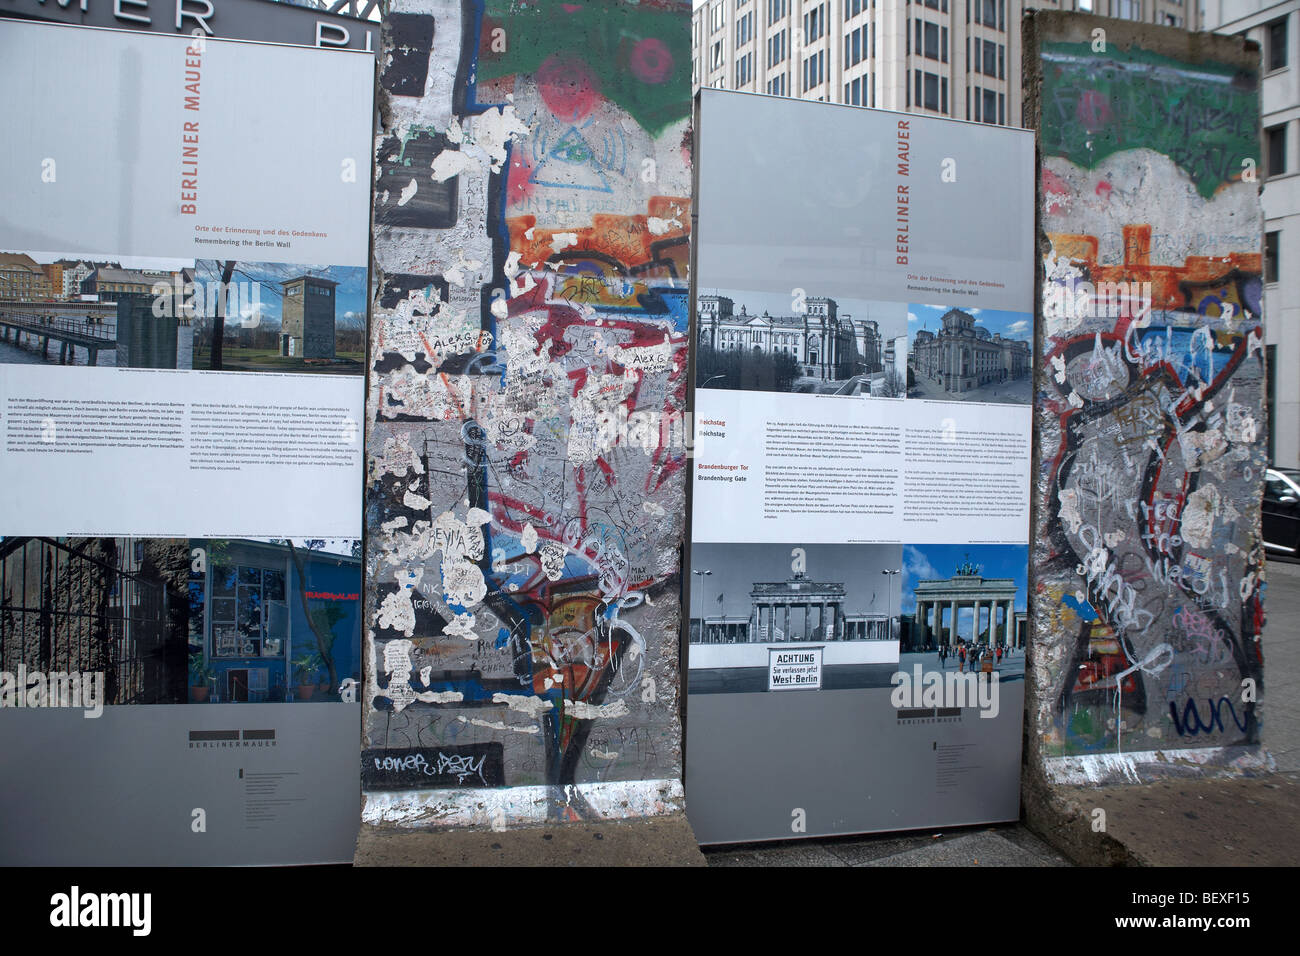 The Wall in Berlin, Berliner Mauer - Stock Image